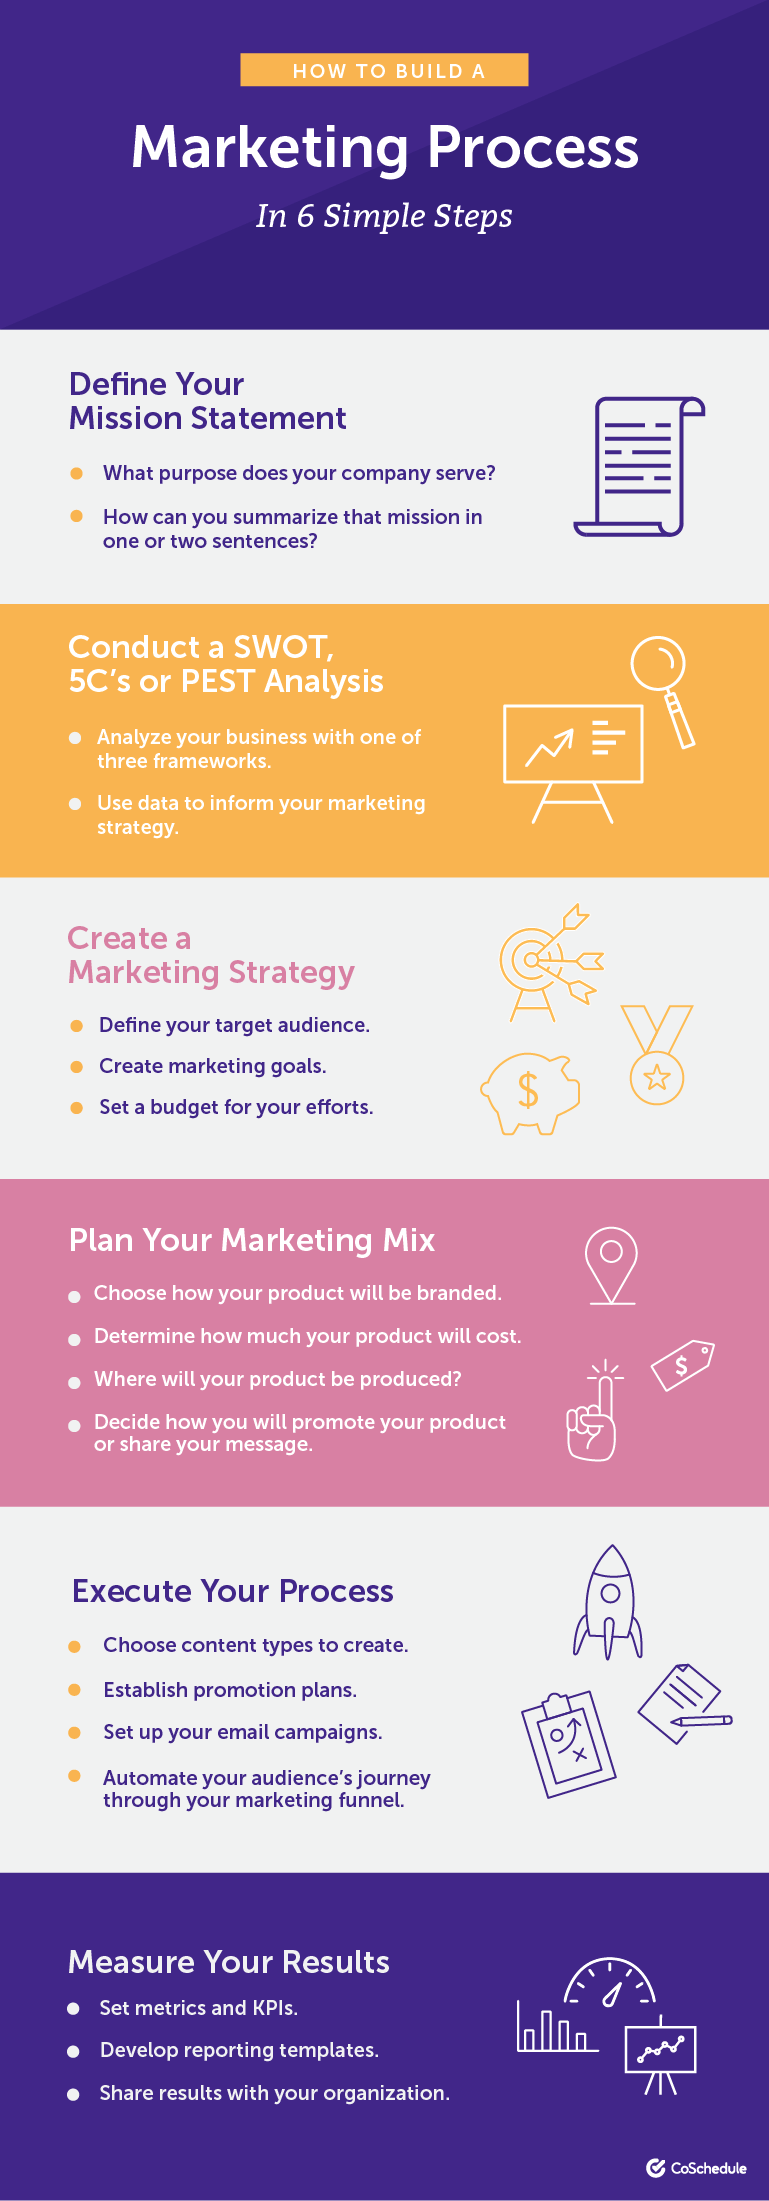 Building a Marketing Process in 6 Steps - Infographic